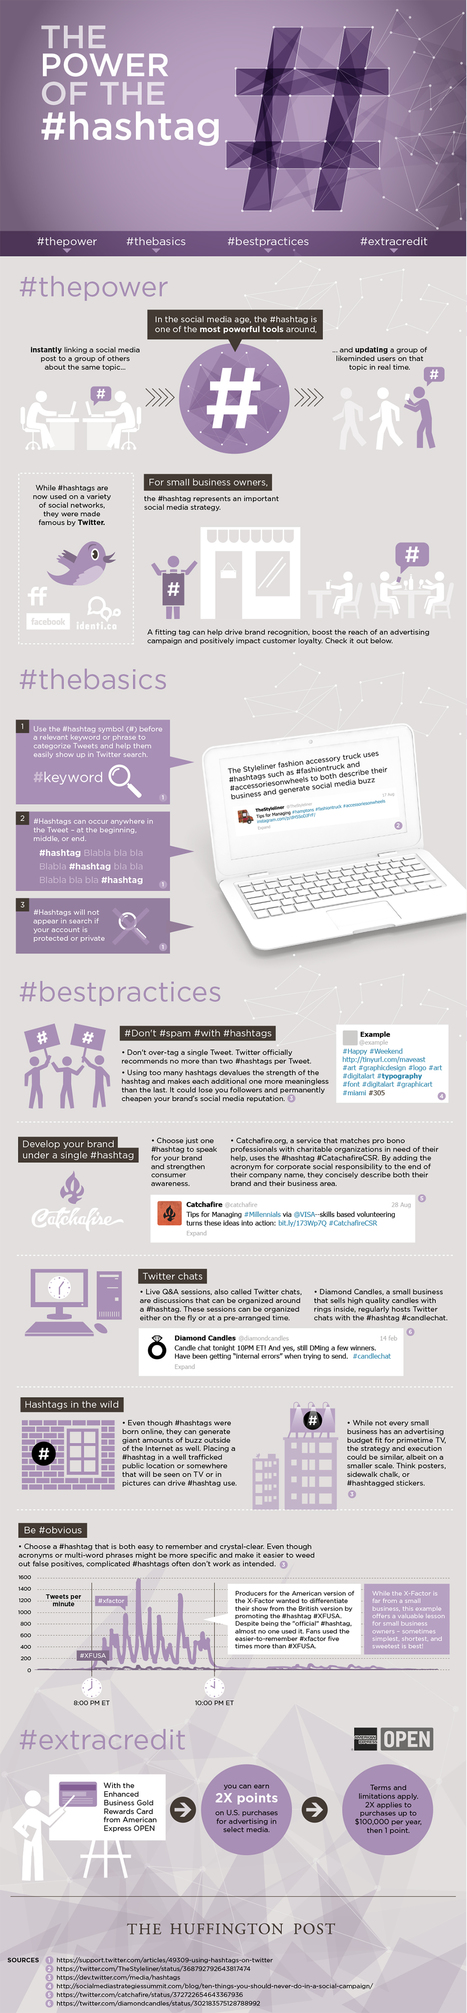 The Power Of The #Hashtag [INFOGRAPHIC] - AllTwitter | Social Media e Innovación Tecnológica | Scoop.it